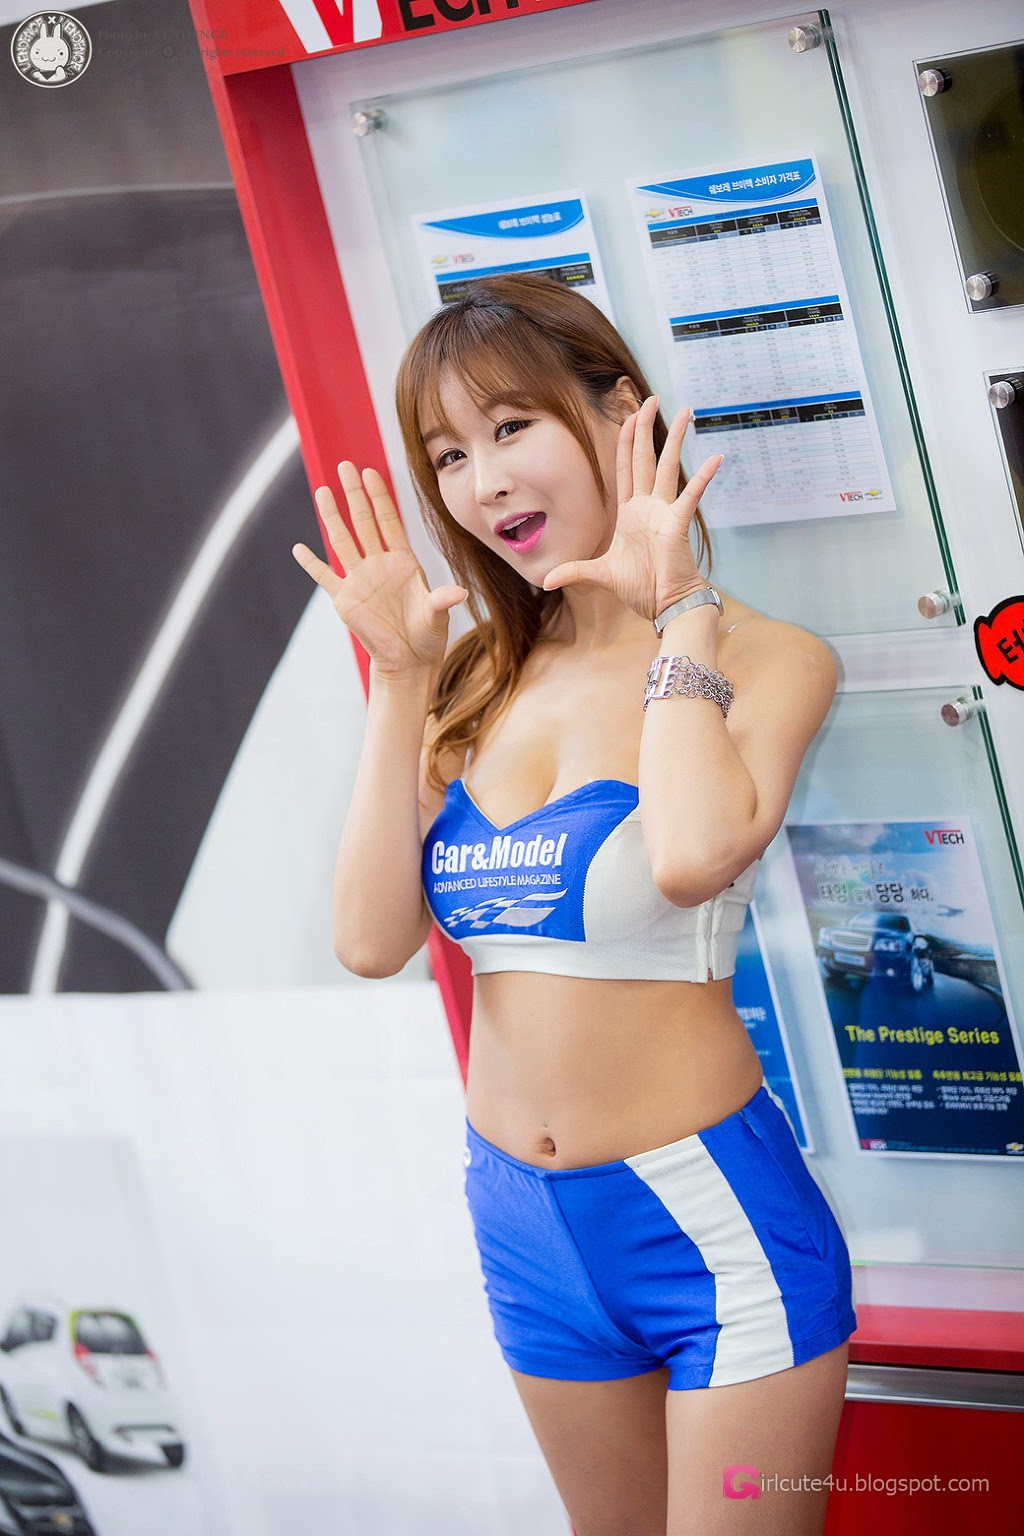 5 Seo Yoon Ah - Automotive Week - very cute asian girl-girlcute4u.blogspot.com